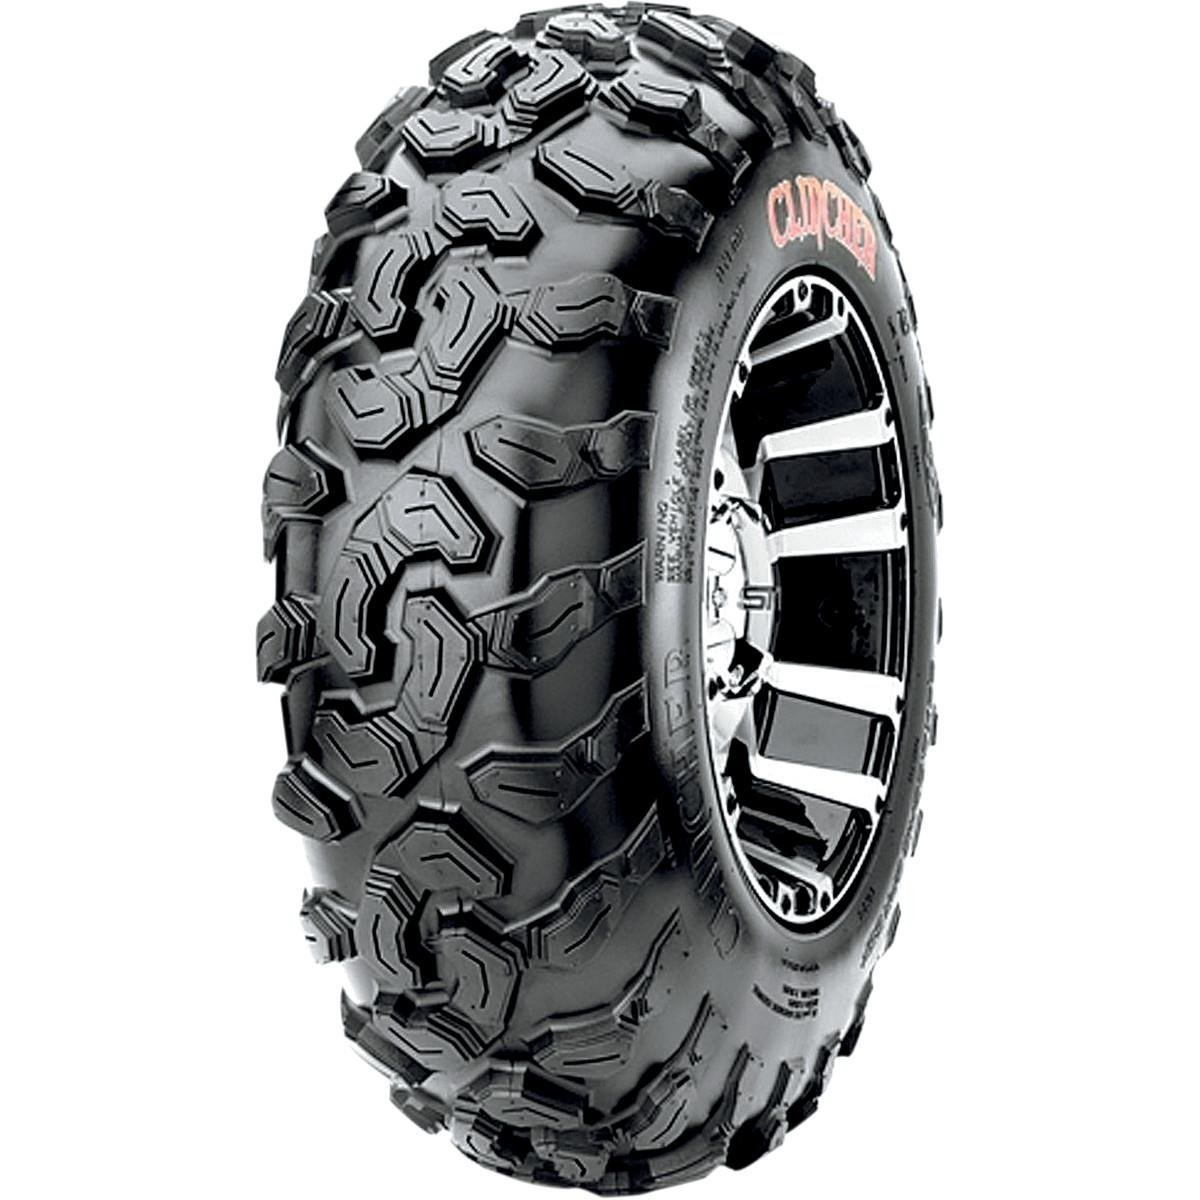 Maxxis Cheng Shin CU03 Clincher Tire - Front - 27x9Rx14 , Position: Front, Rim Size: 14, Tire Application: All-Terrain, Tire Size: 27x9x14, Tire Type: ATV/UTV, Tire Construction: Radial, Tire Ply: 6 TM007232G0